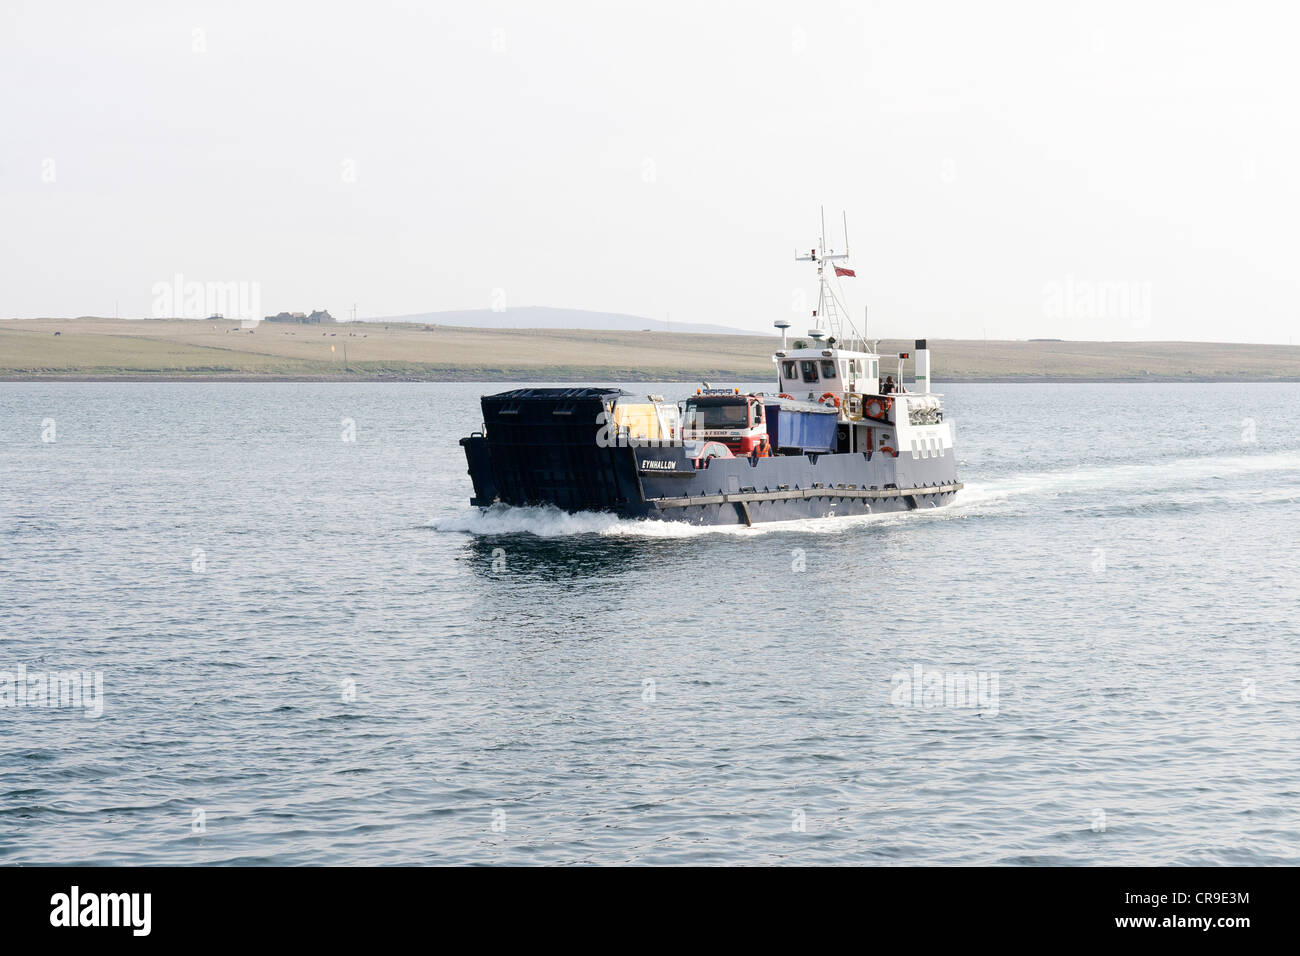 The Island of Rousay - Orkney Islands, Scotland. The ferry arriving - Stock Image